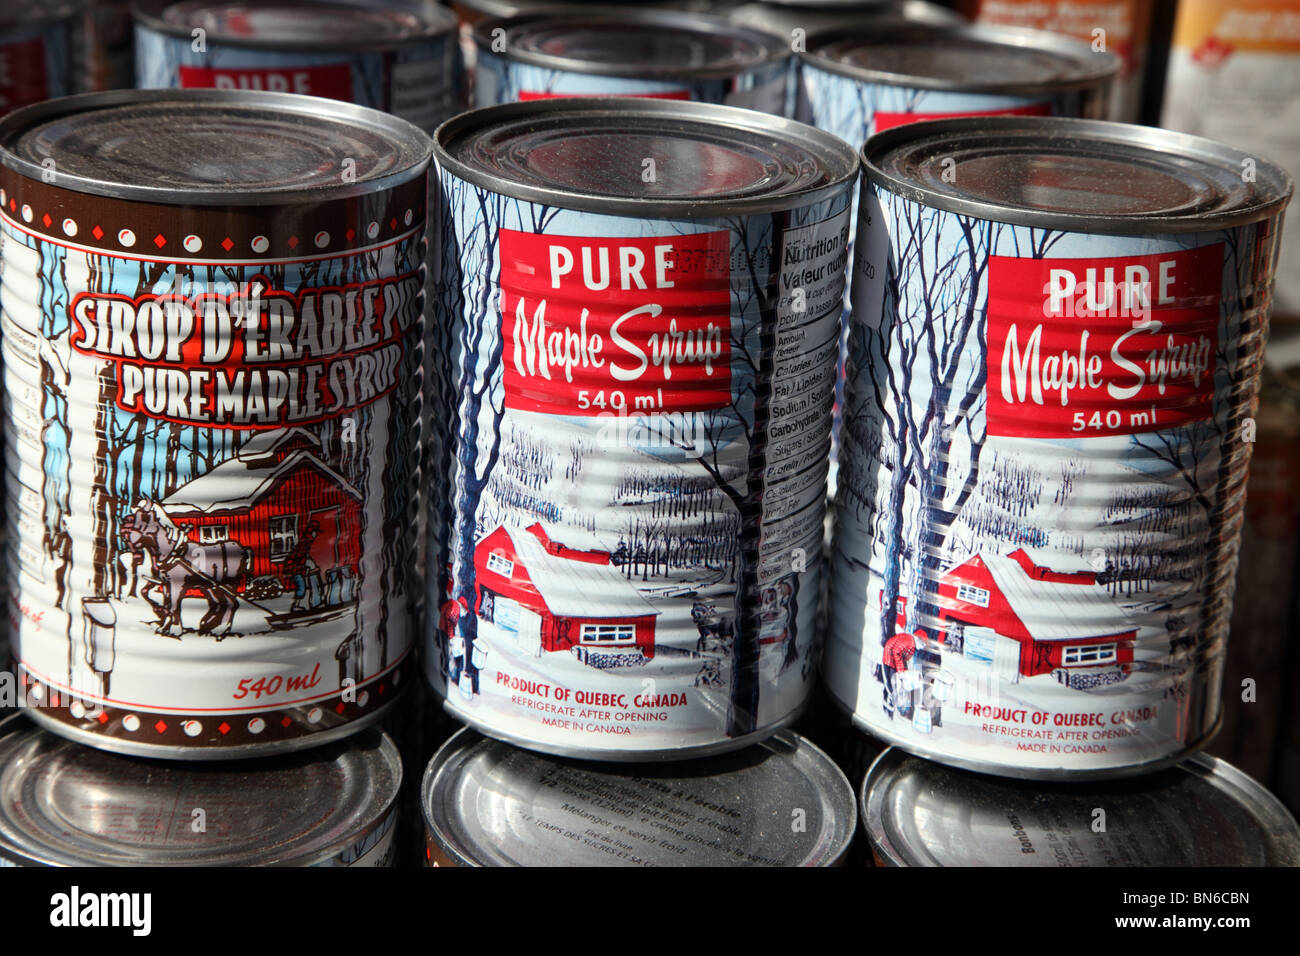 Canned maple syrup, Jean Talon Market, Montreal - Stock Image